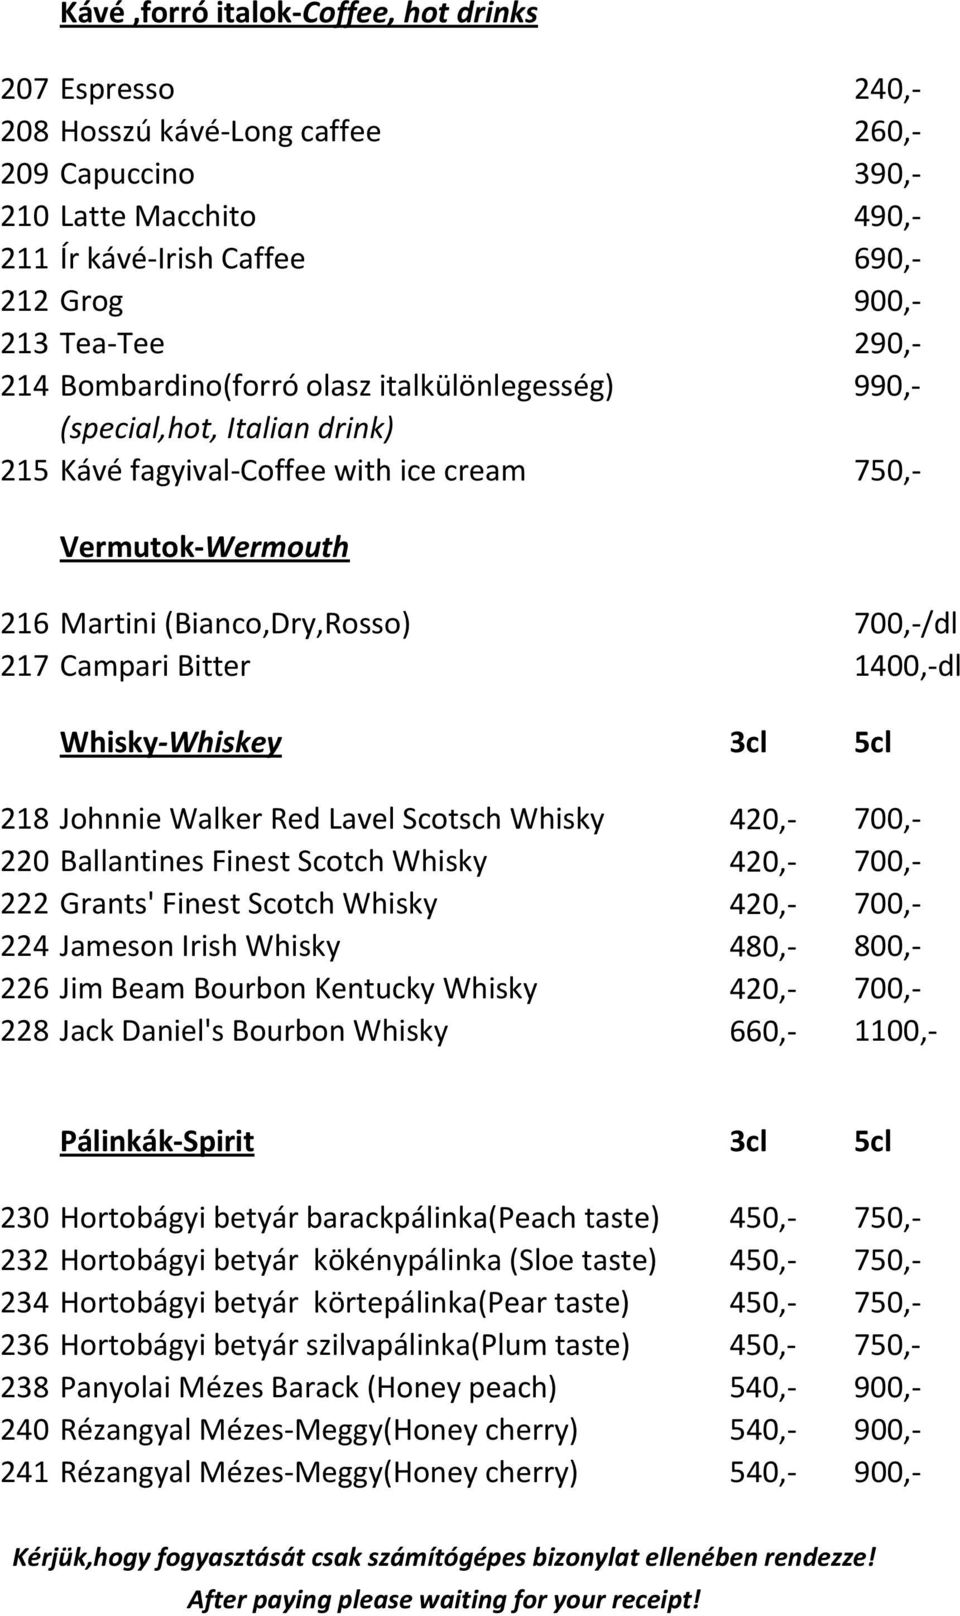 Bitter 1400,-dl Whisky-Whiskey 3cl 5cl 218 Johnnie Walker Red Lavel Scotsch Whisky 420,- 700,- 220 Ballantines Finest Scotch Whisky 420,- 700,- 222 Grants' Finest Scotch Whisky 420,- 700,- 224